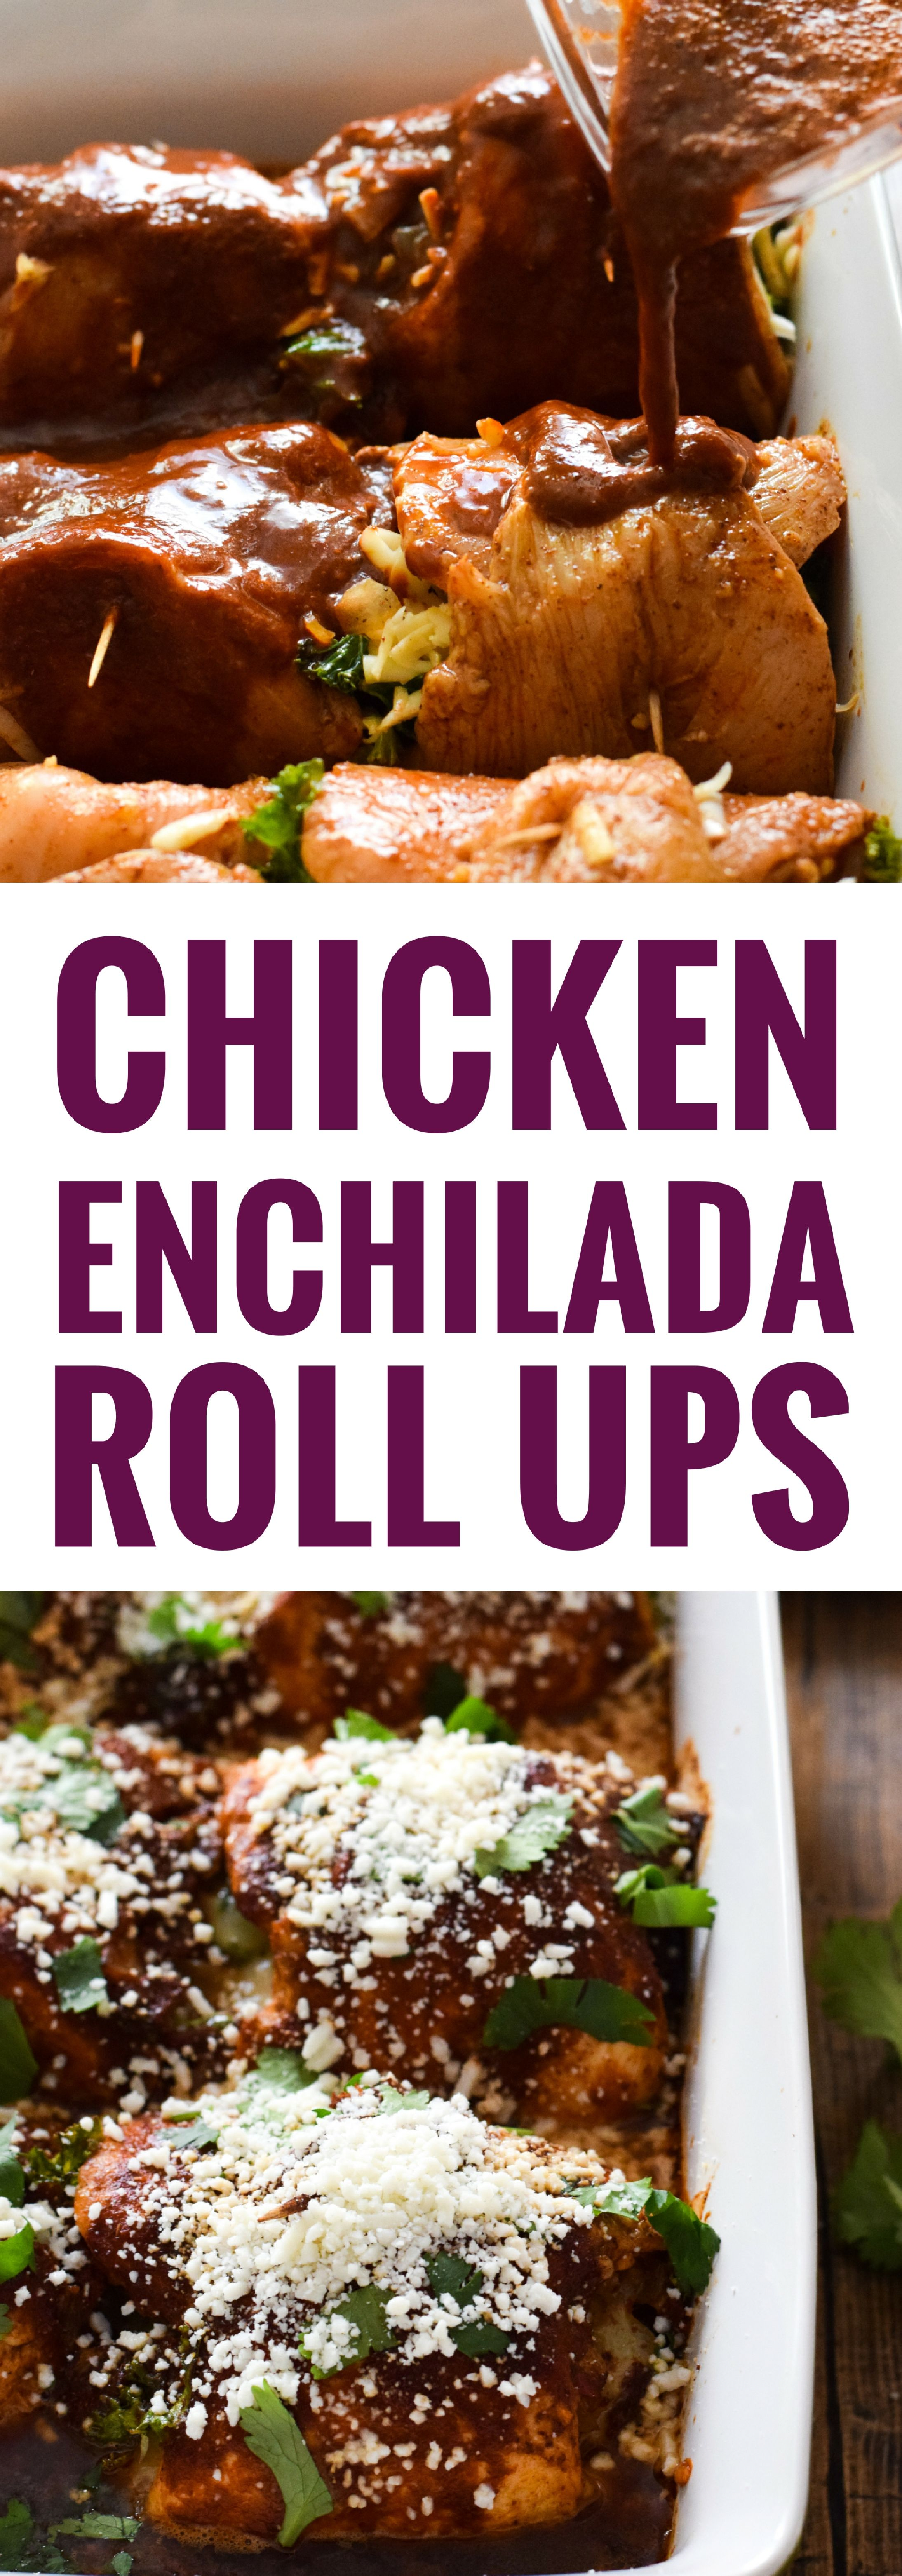 Make your life a little tastier with these cheesy Chicken Enchilada Roll Ups covered in an authentic red enchilada sauce. (low carb, gluten free) via @isabeleats